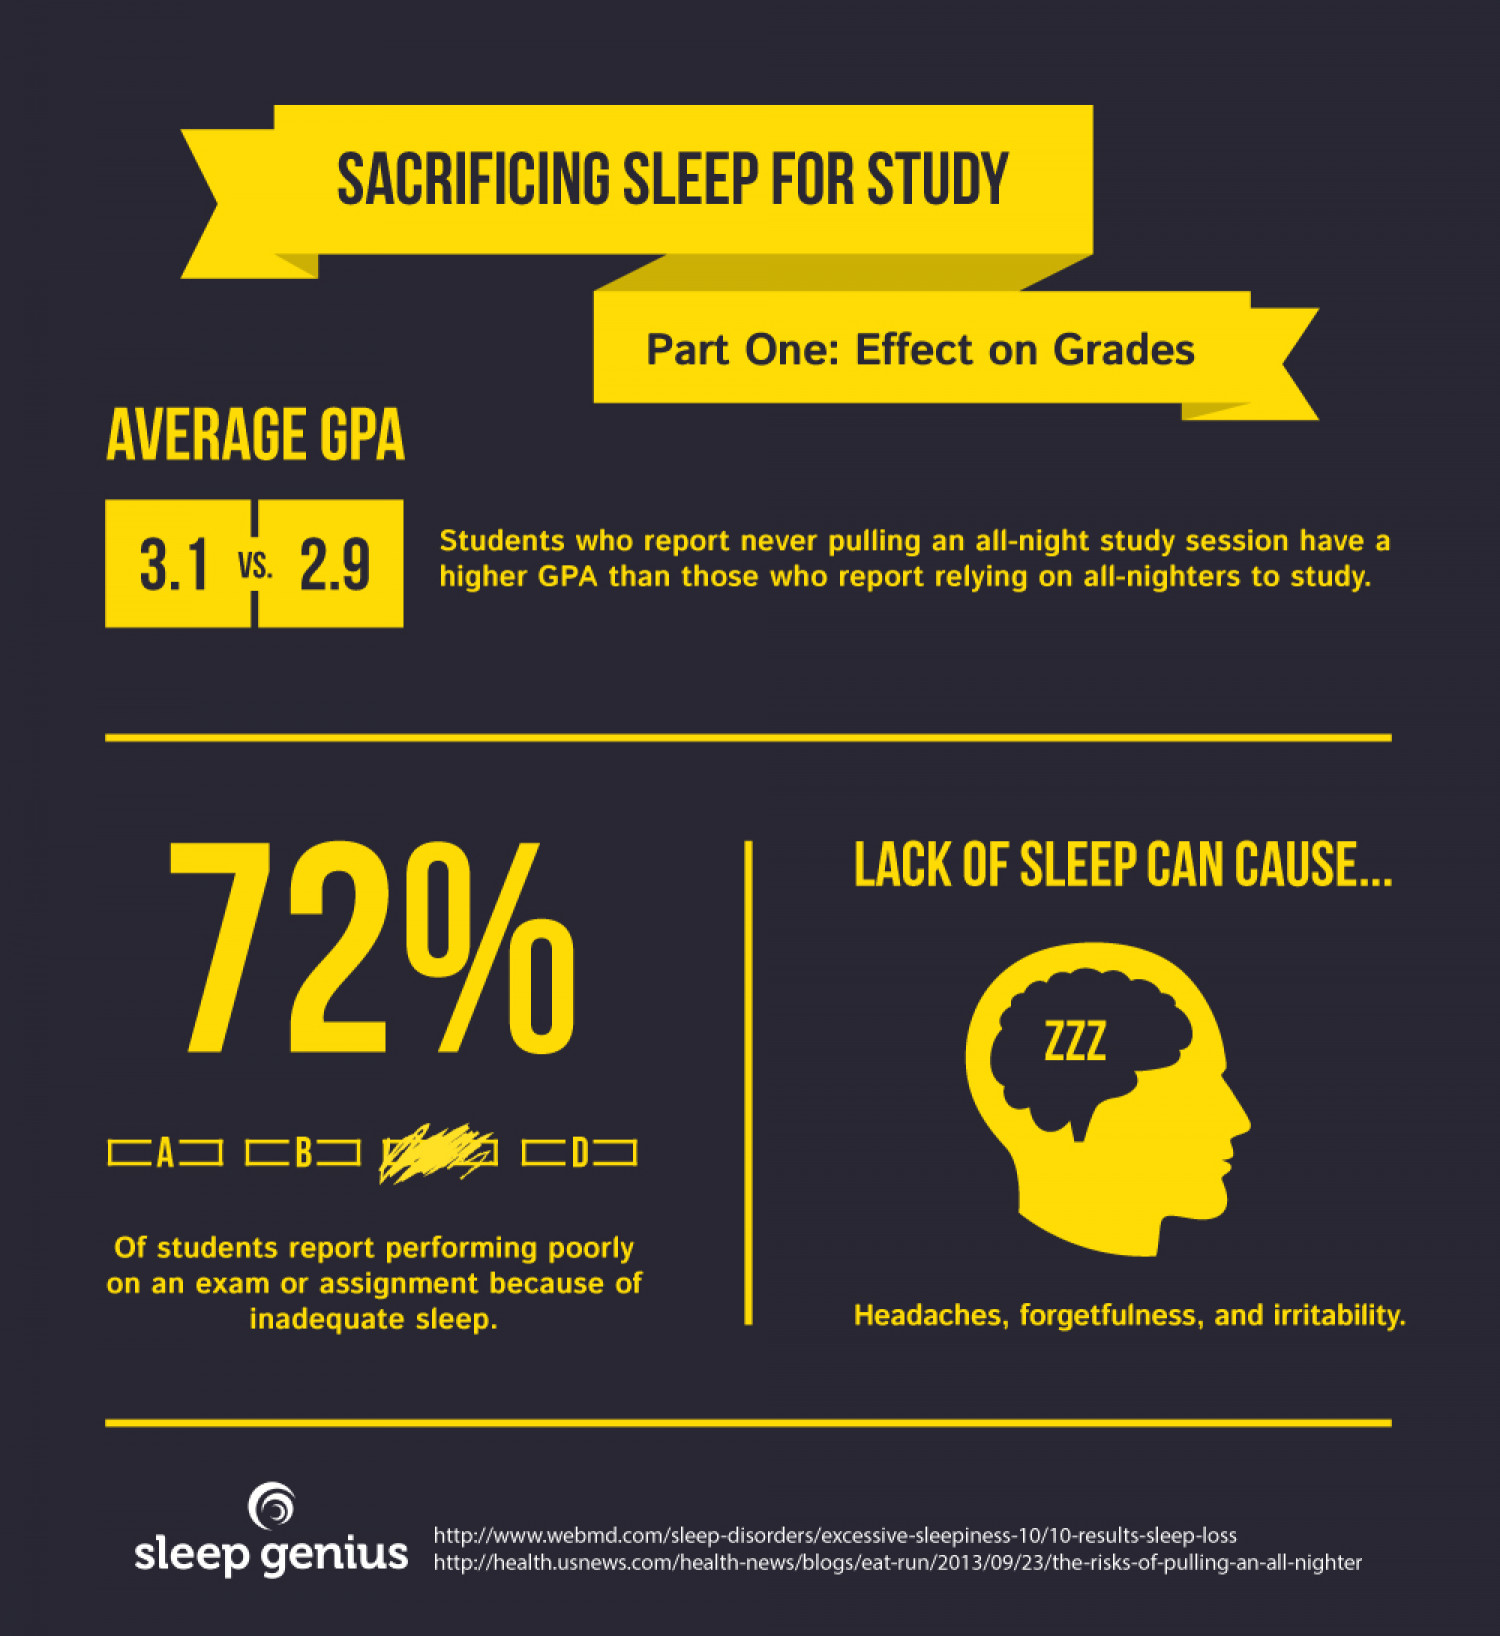 Sacrificing Sleep for Study Infographic